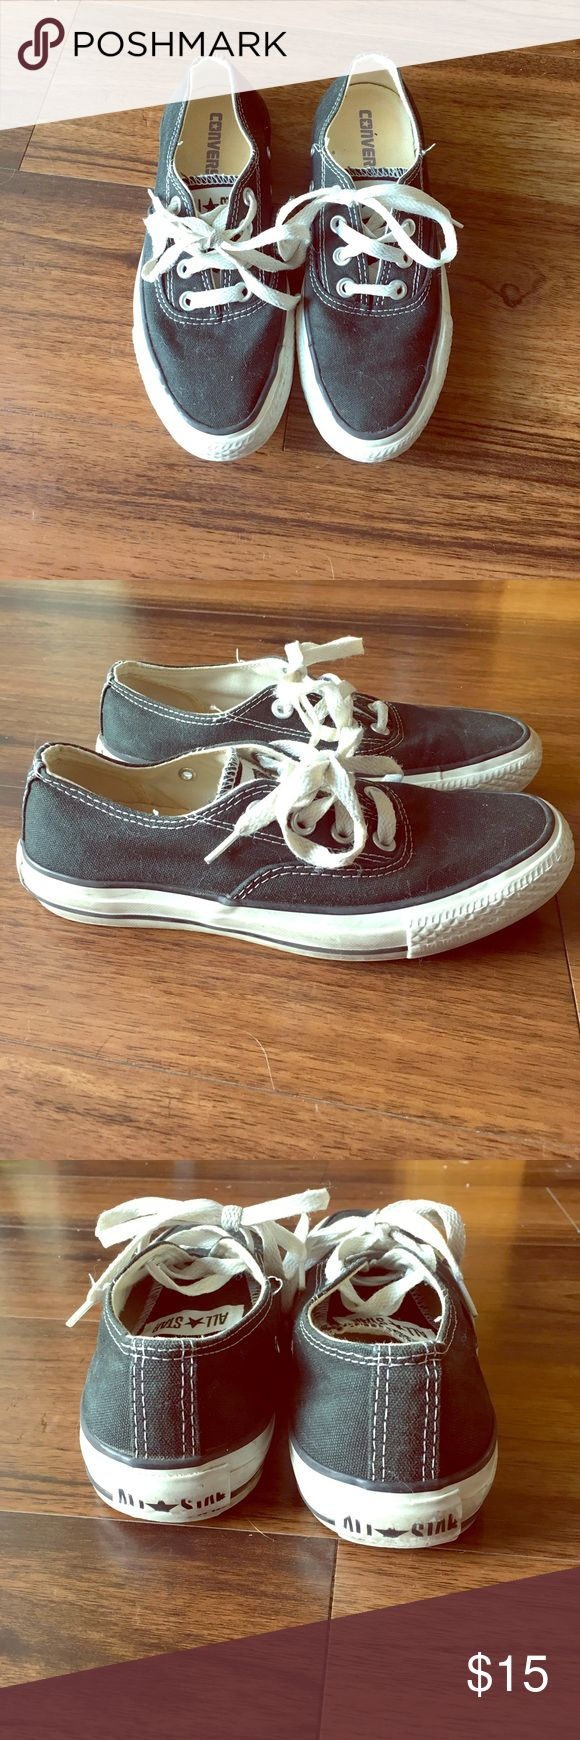 Converse Tennis Shoes Black converse tennis shoes! Nearly perfect condition. Cute and comfy!! Converse Shoes Sneakers